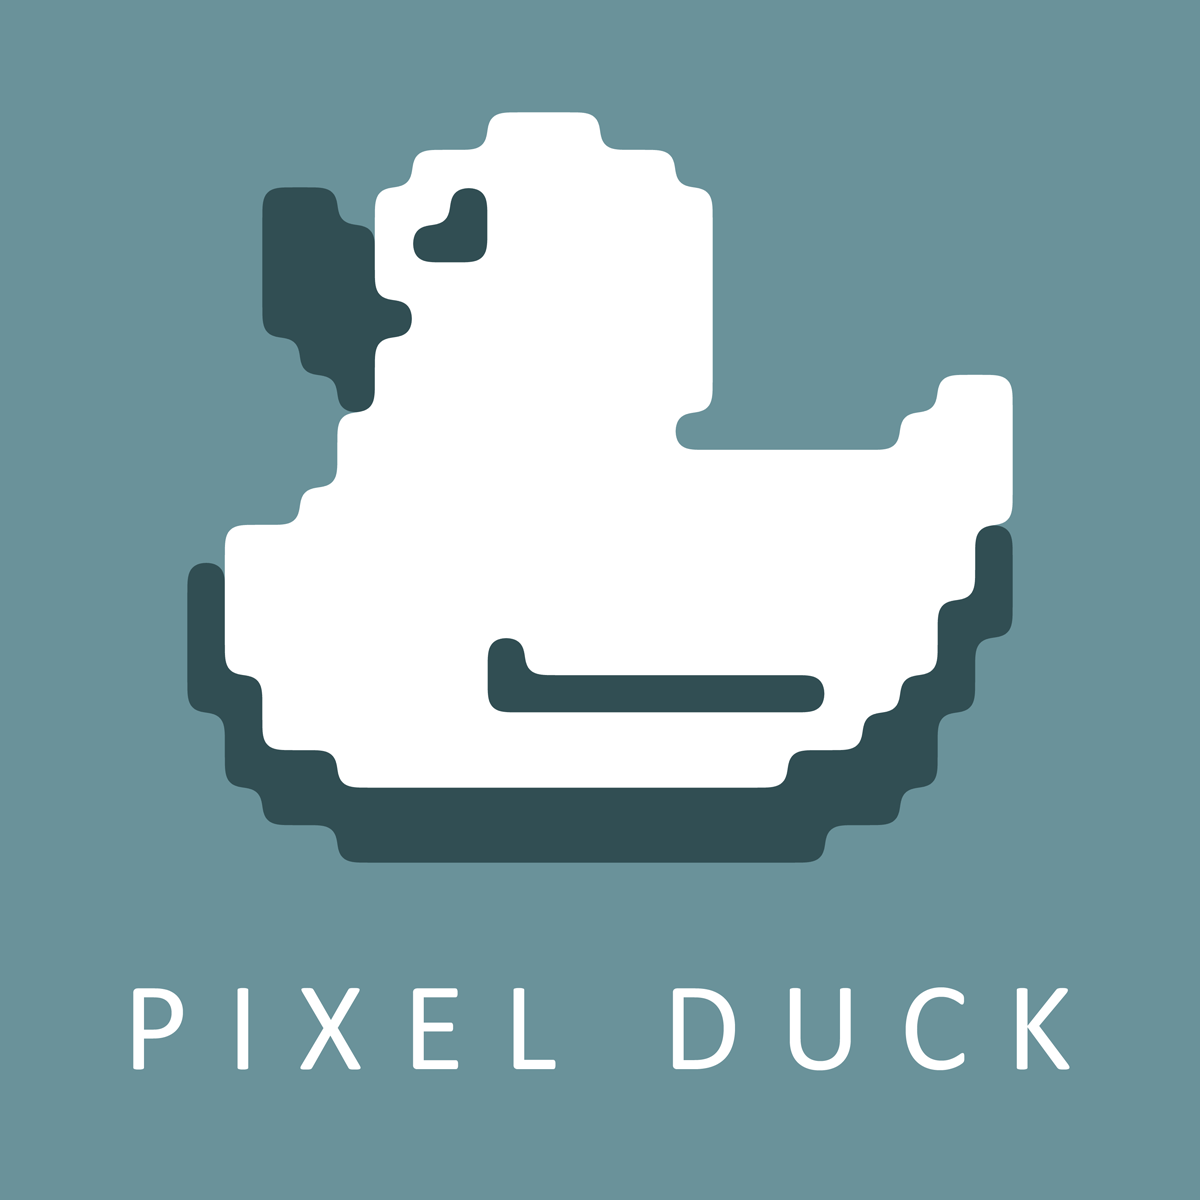 Website Design Company Logo - logo design by PixelDuck